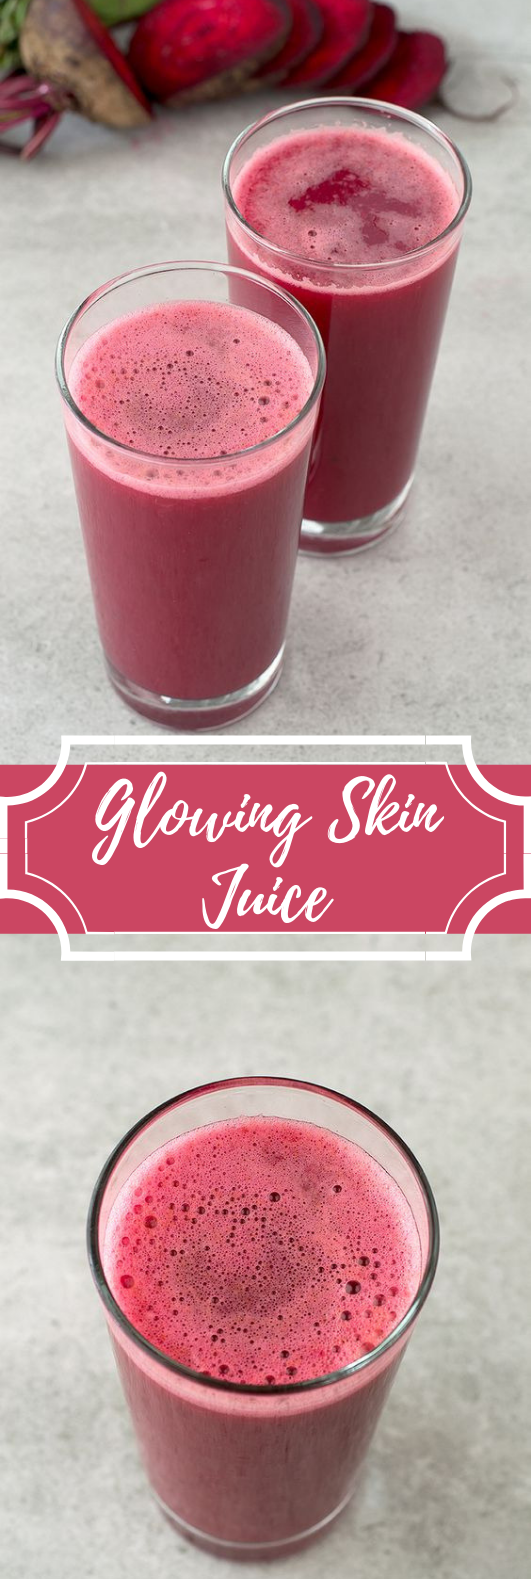 Glowing Skin Juice #Drink #HealthyDrink